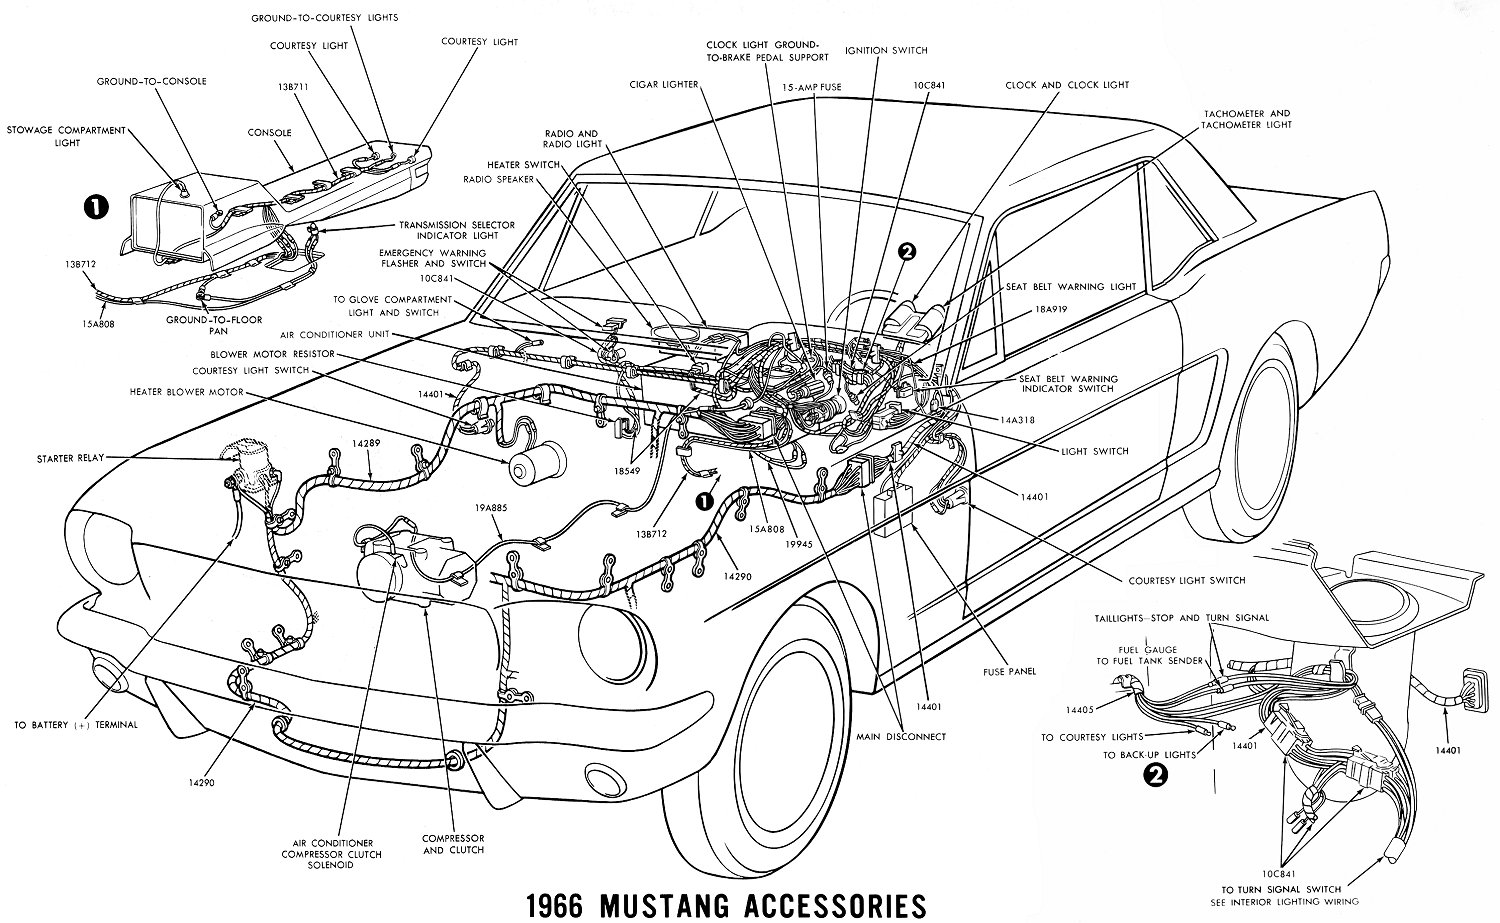 1966 Mustang Air Conditioner Wiring Diagram Opinions About 1800 Goldwing Trike Trailer Diagrams Average Joe Restoration Radio 1965